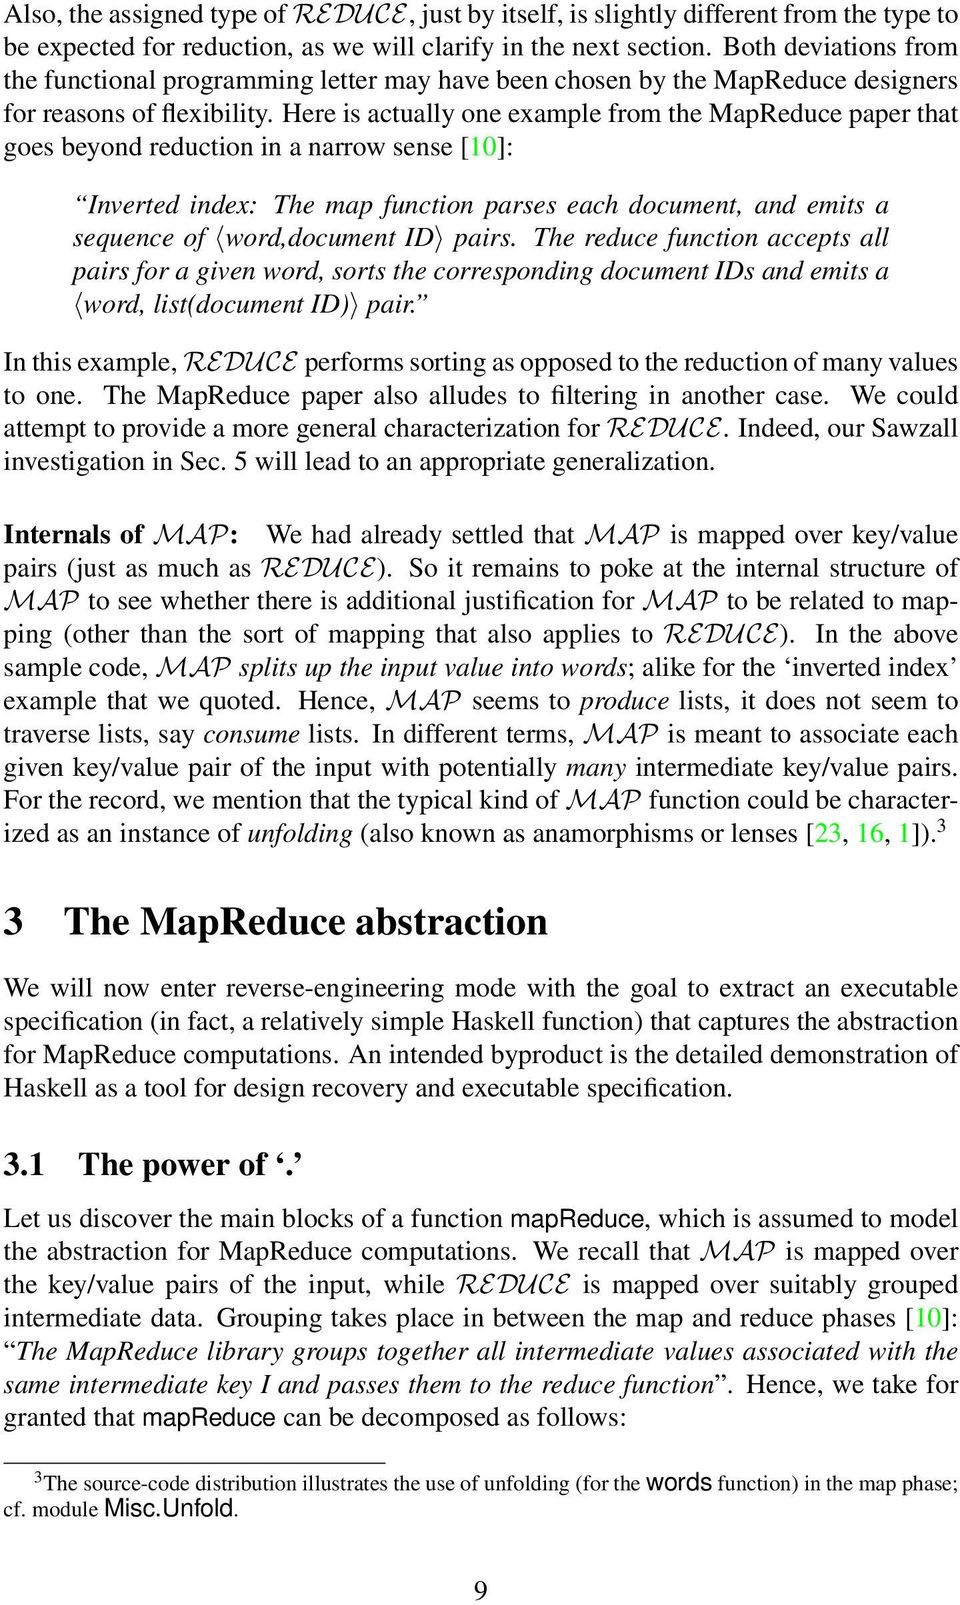 Here is actually one example from the MapReduce paper that goes beyond reduction in a narrow sense [10]: Inverted index: The map function parses each document, and emits a sequence of word,document